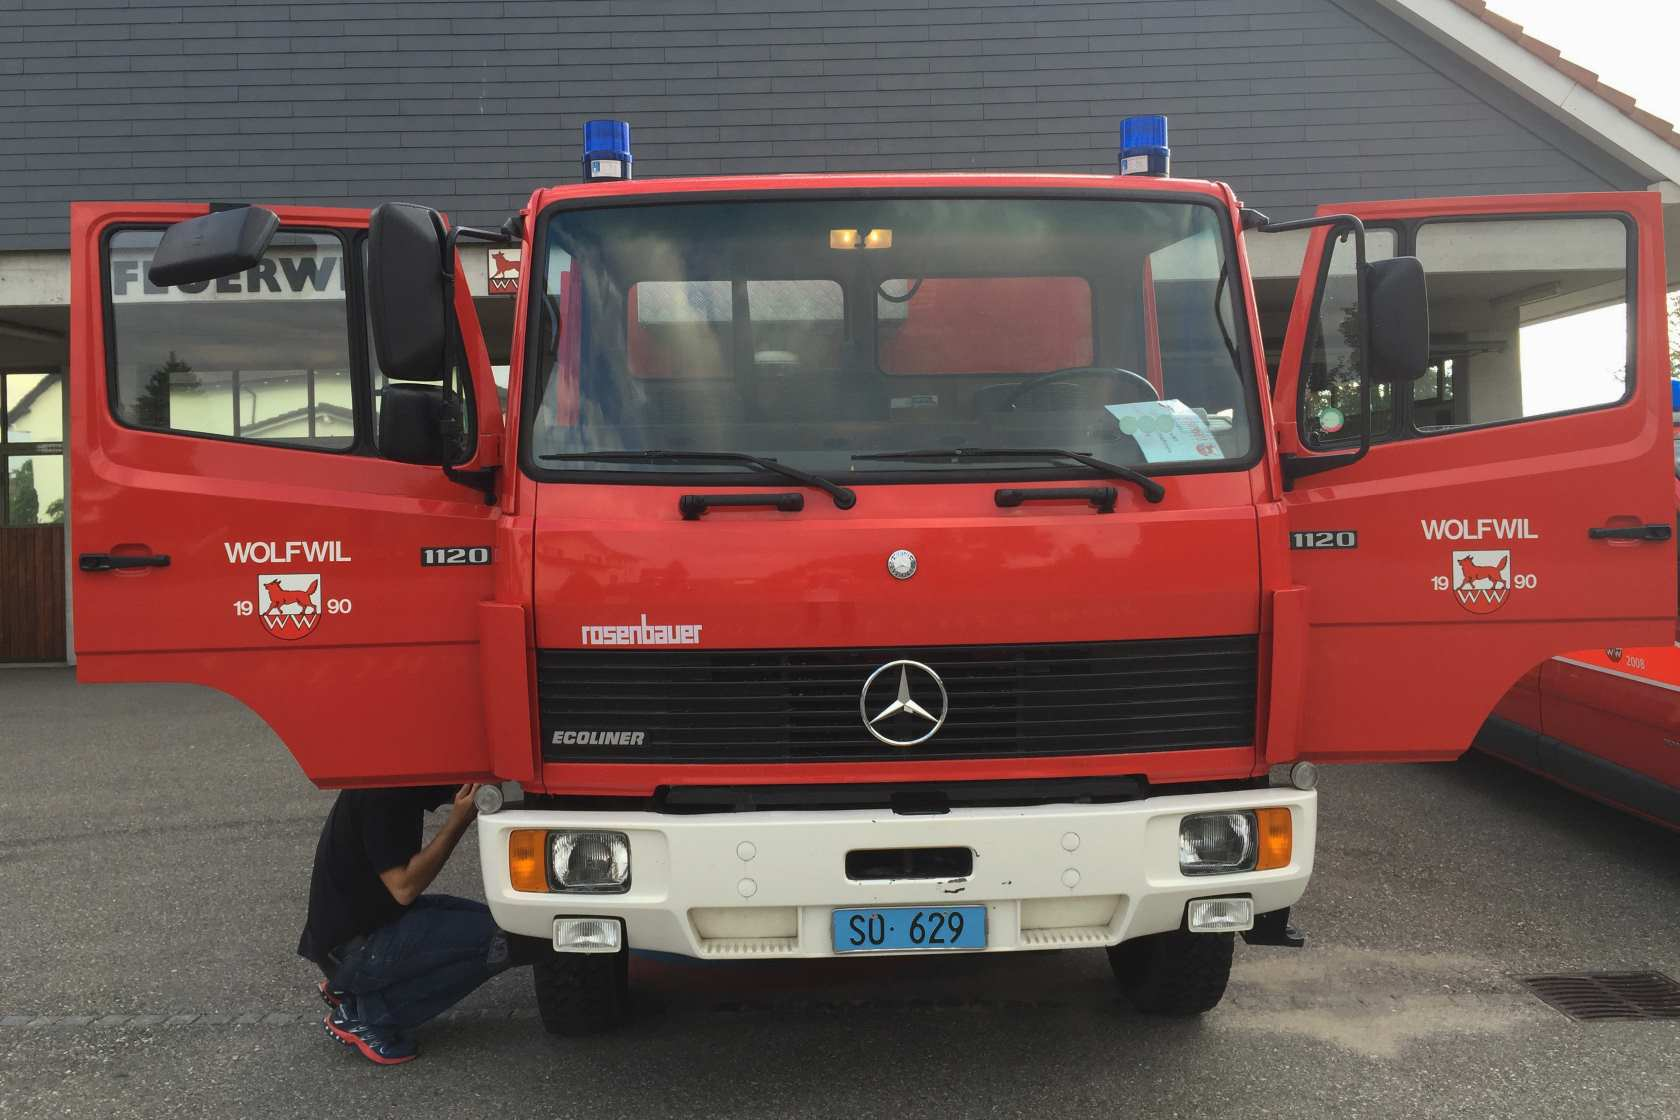 Whaly- the fire truck ready converted to an expedition vehicle